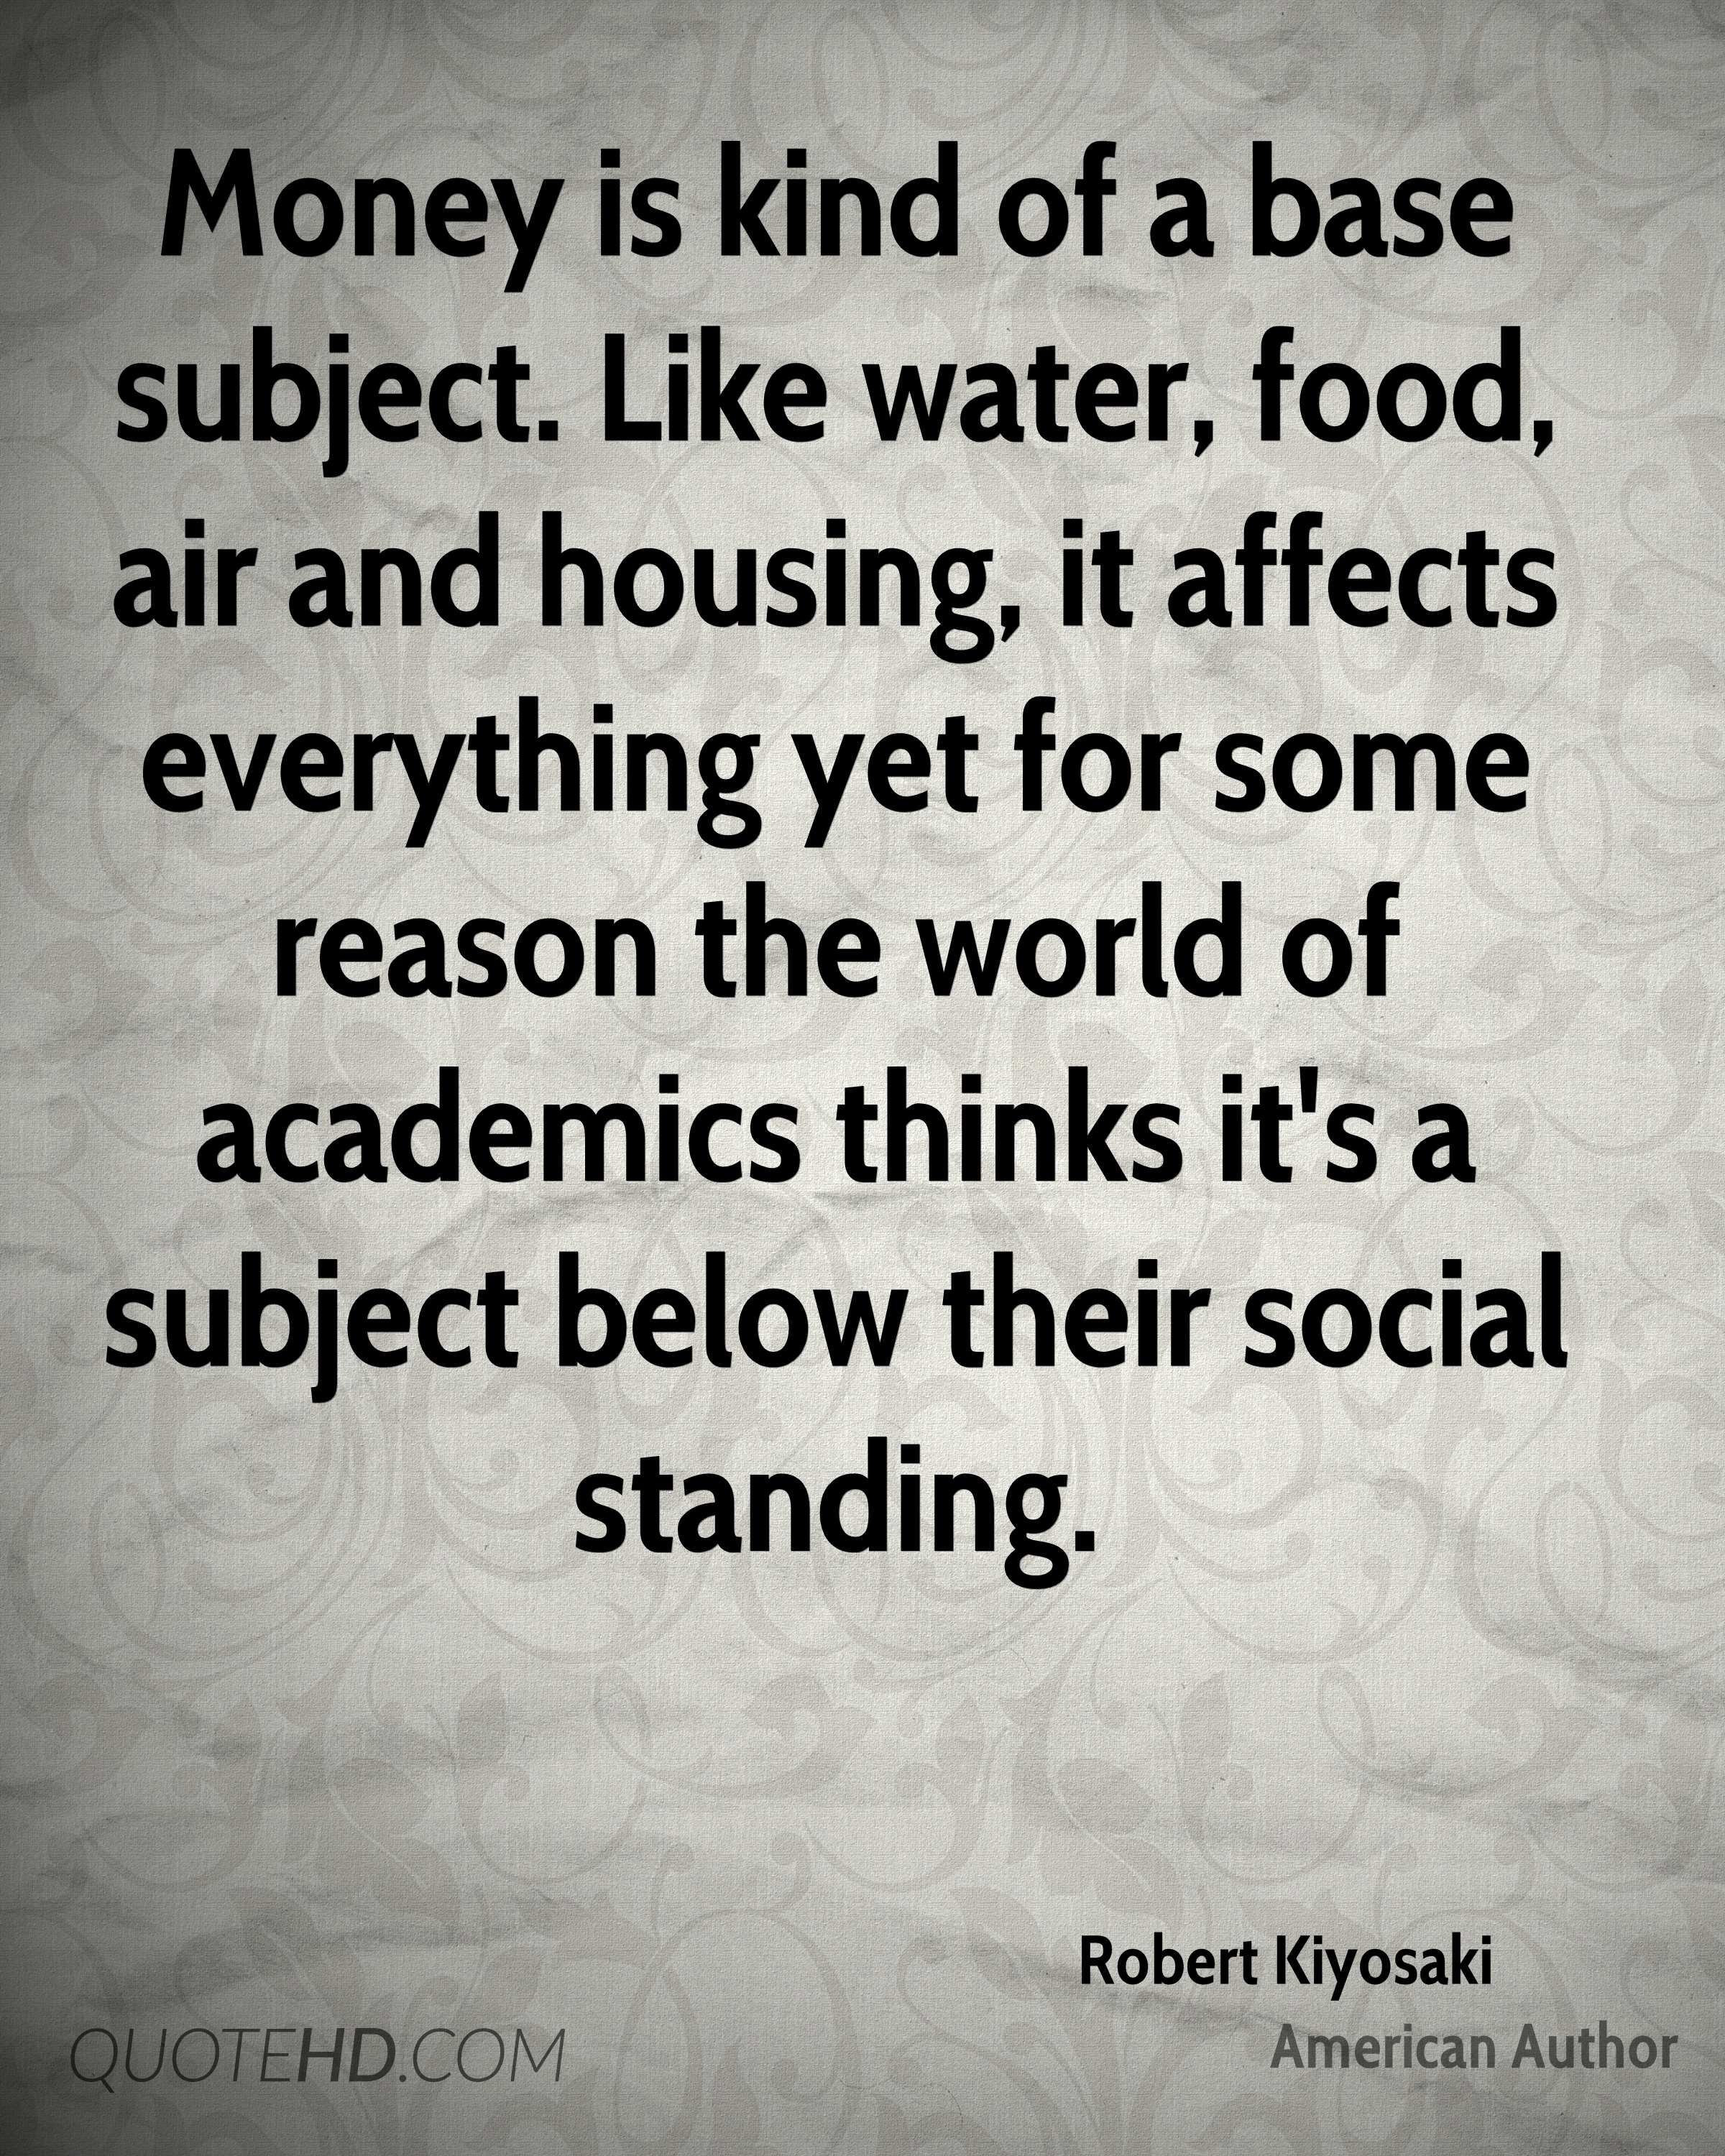 Money is kind of a base subject. Like water, food, air and housing, it affects everything yet for some reason the world of academics thinks it's a subject below their social standing.